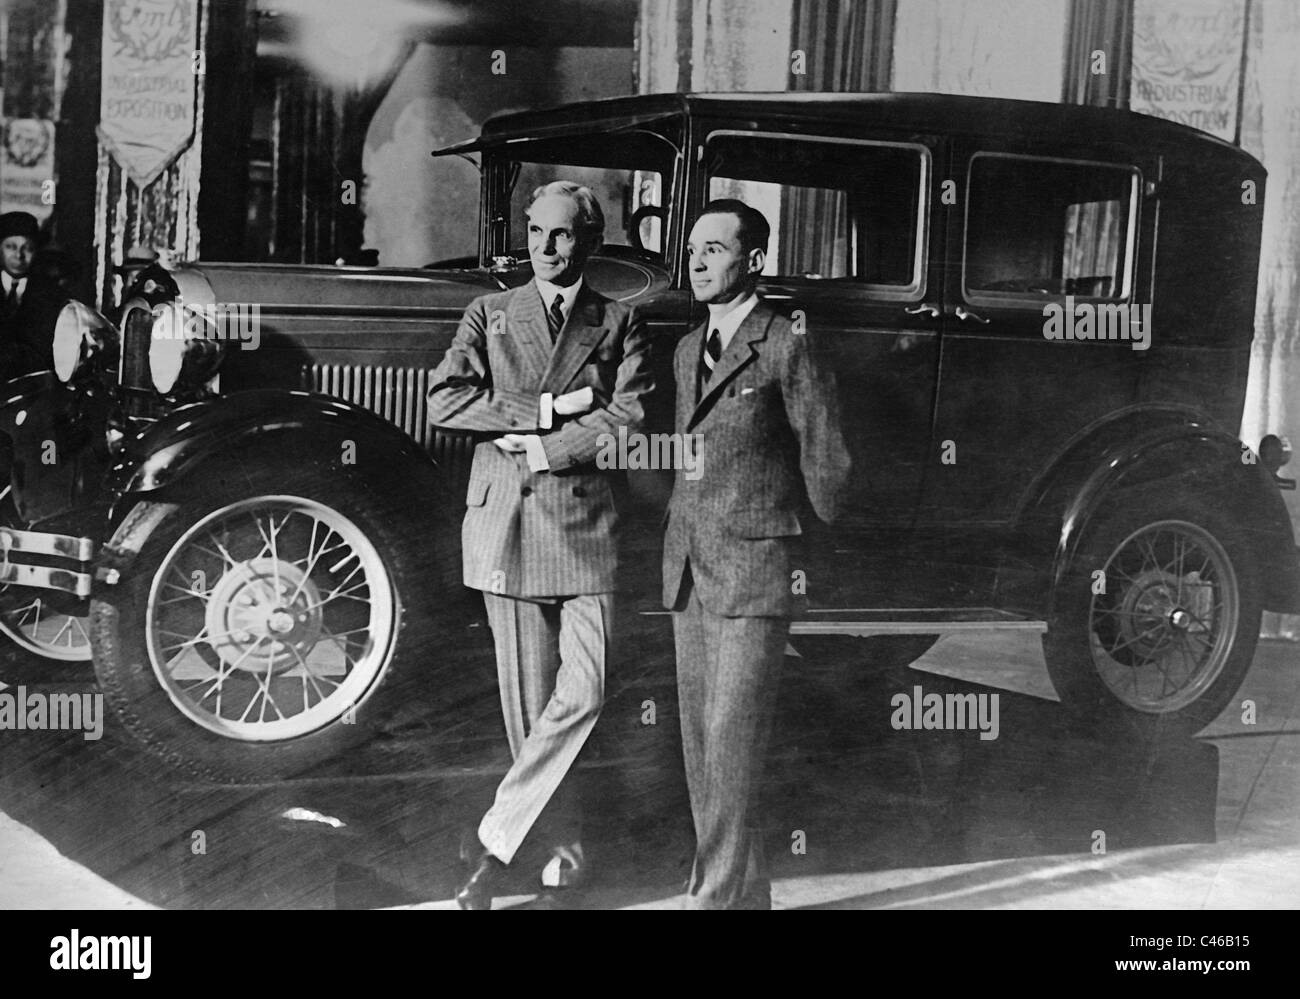 research paper henry ford Between 1910 and 1919, henry ford reduced the model t's price from around $800 to $350, solidified his position as the world's greatest automaker, and made himself a billionaire.